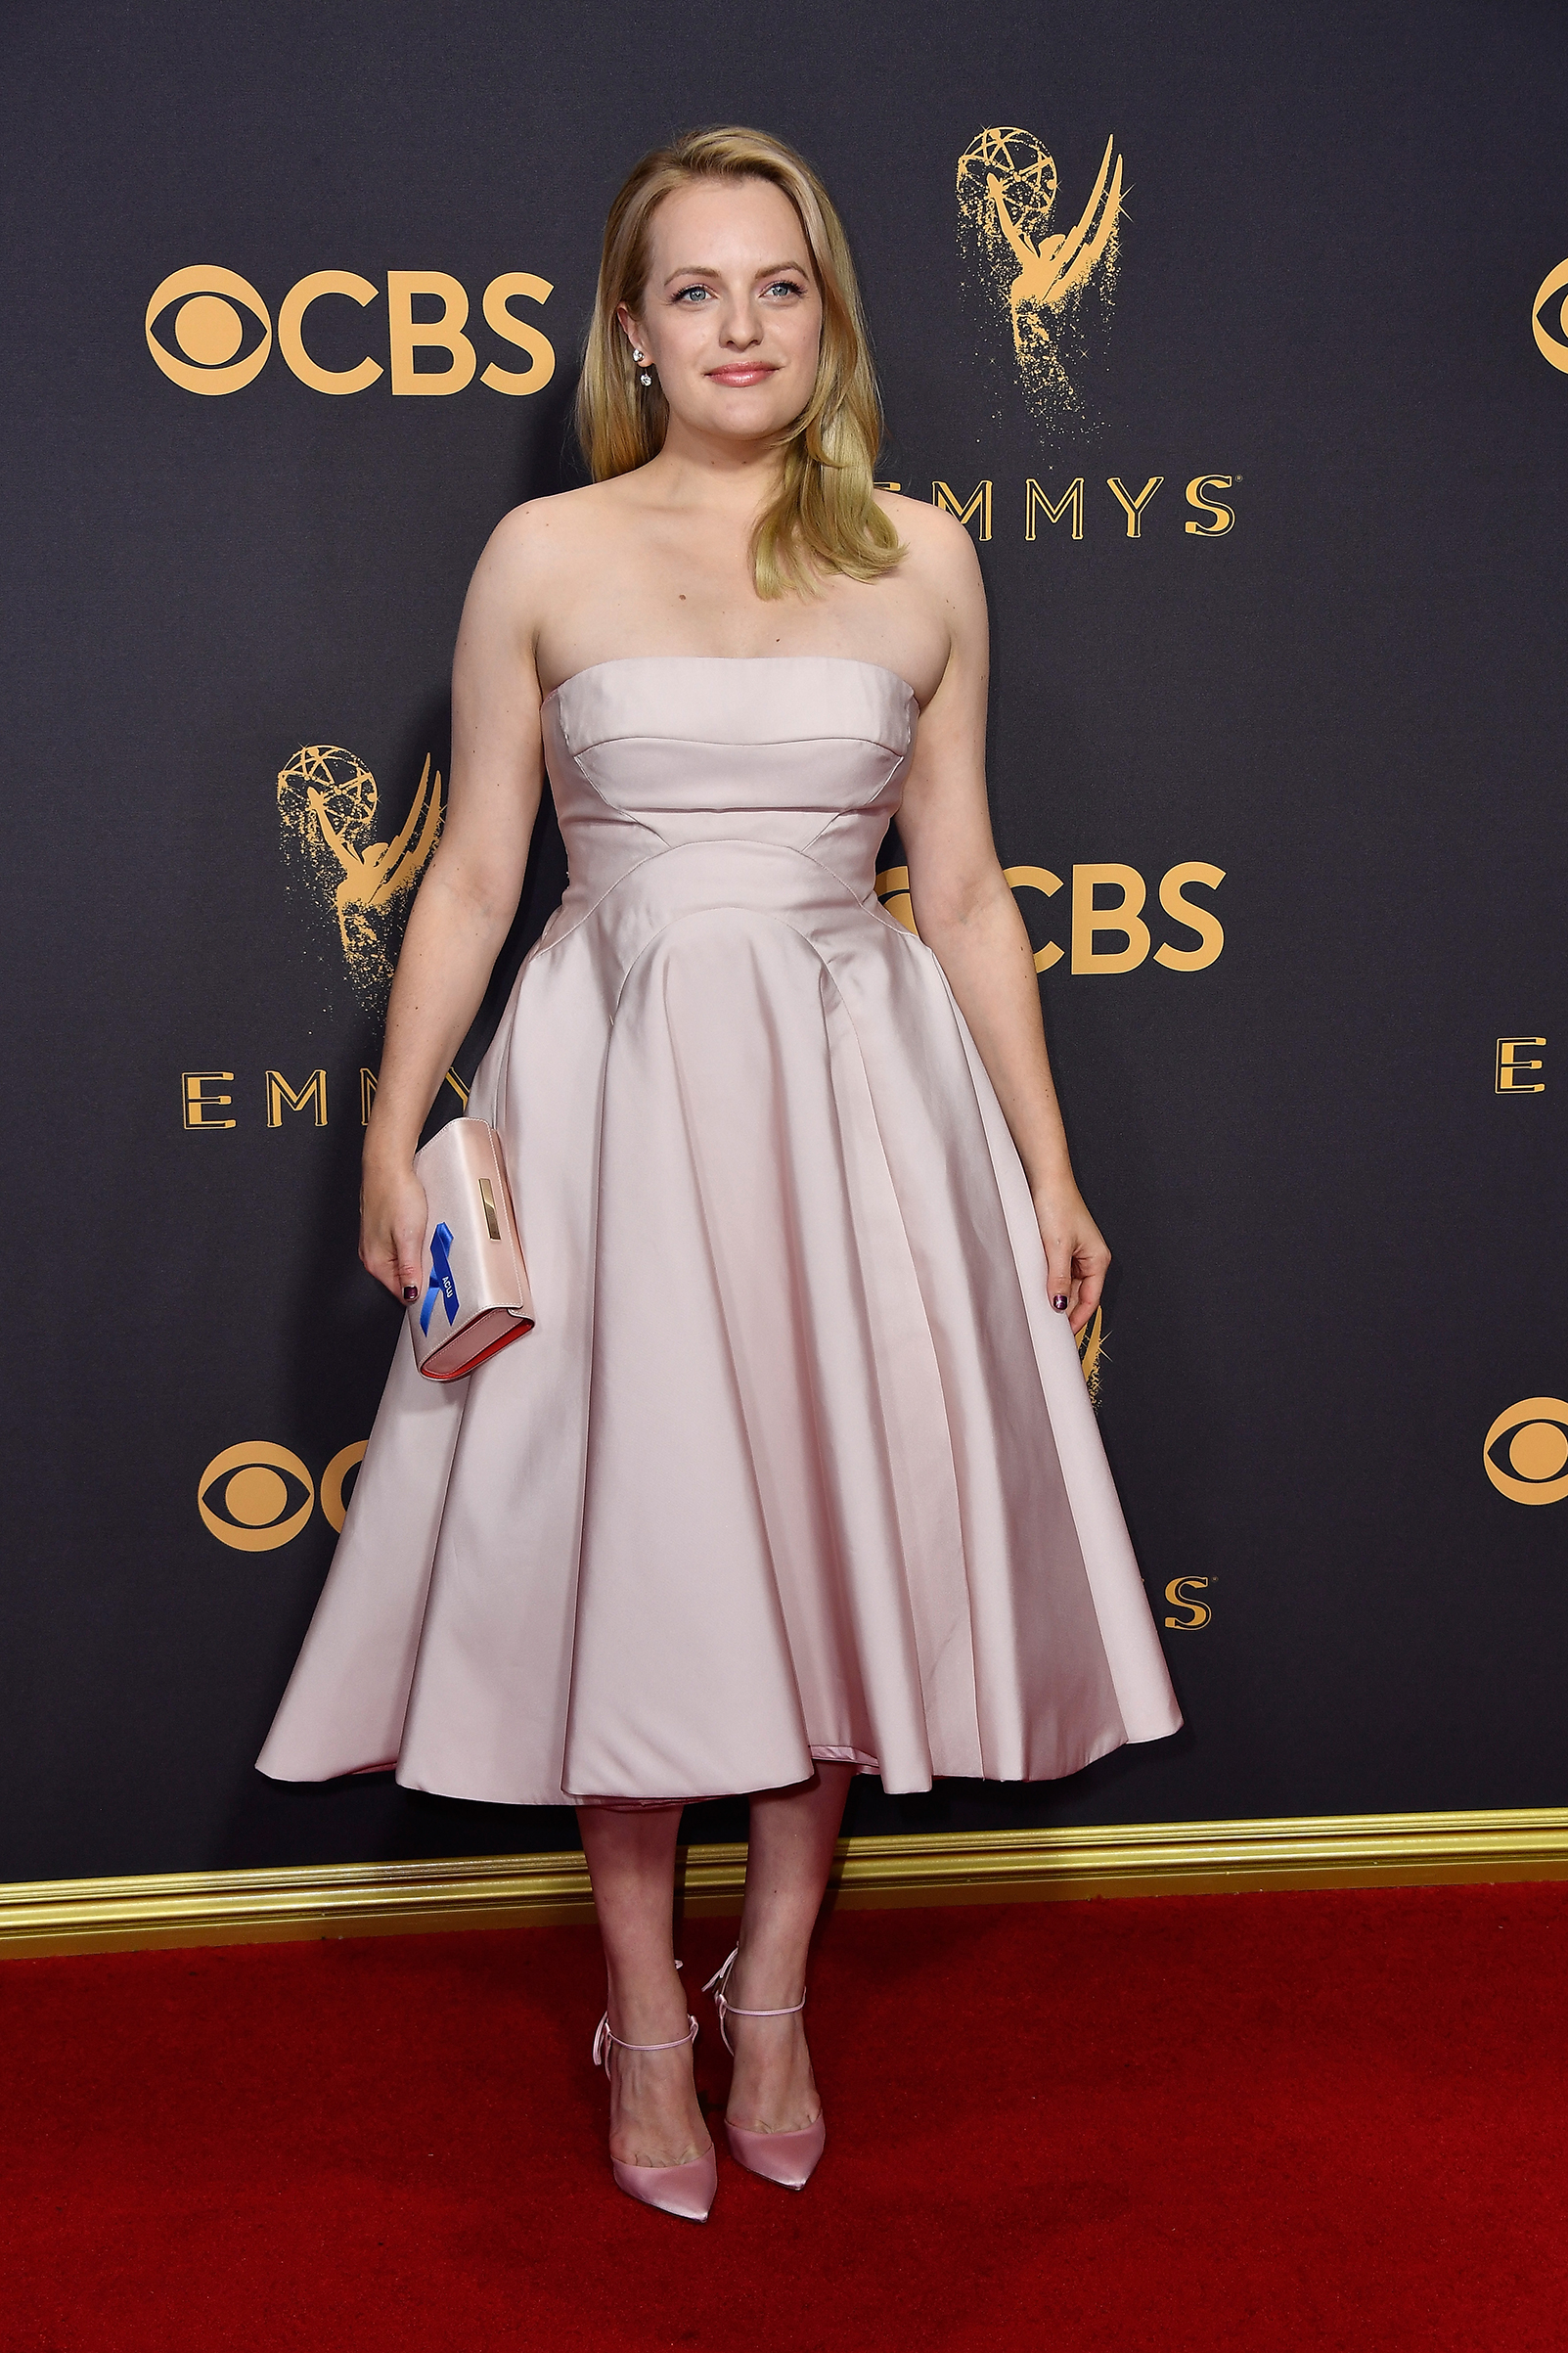 Actor Elisabeth Moss attends the 69th Annual Primetime Emmy Awards at Microsoft Theater on September 17, 2017 in Los Angeles, California.